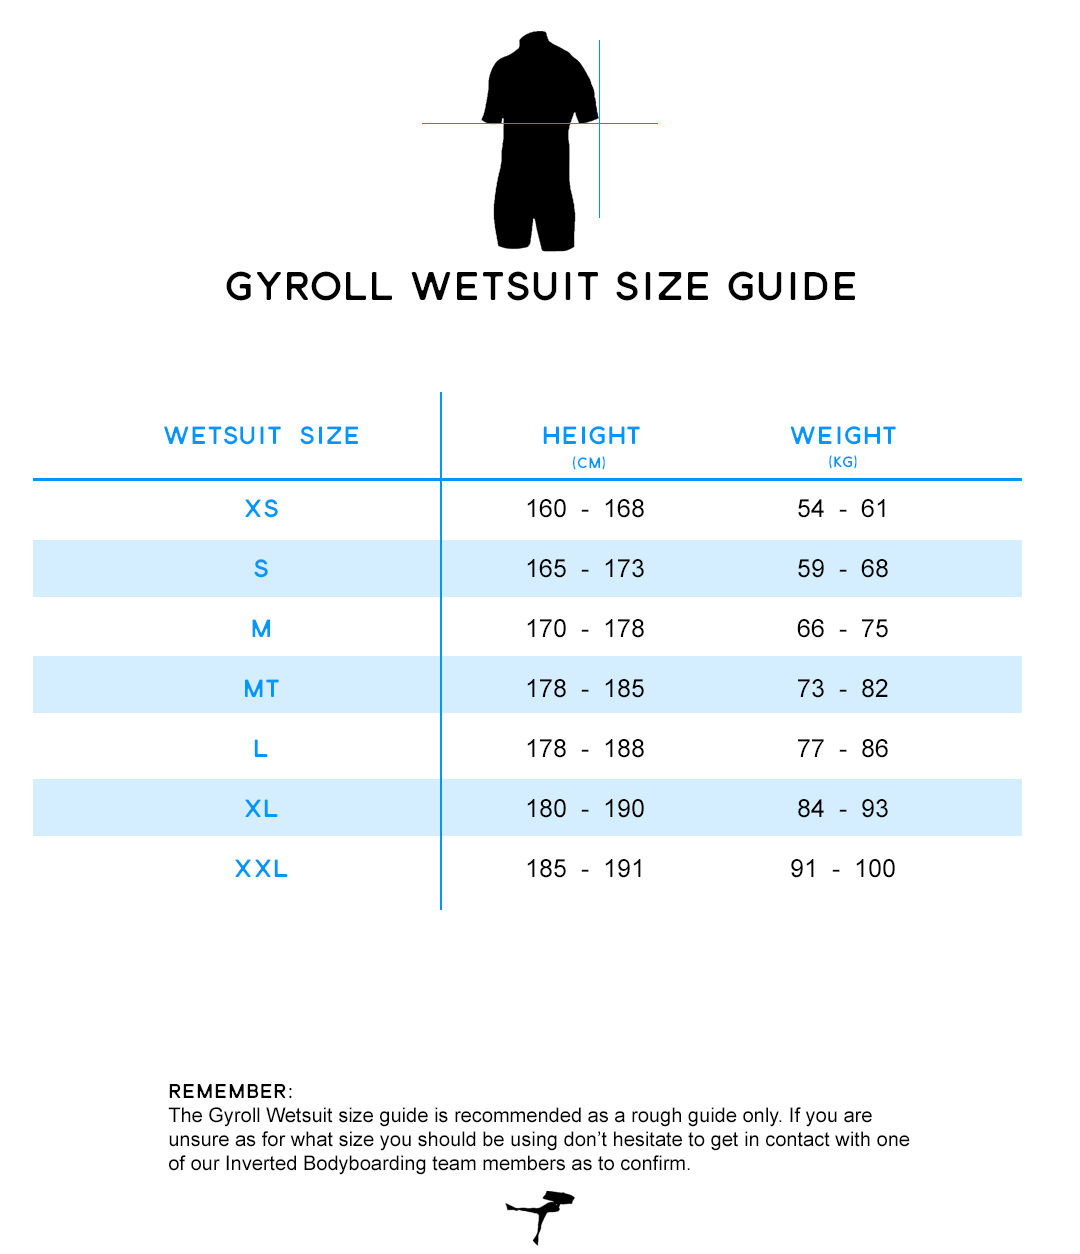 Gyroll Wetsuit Size Guide at Inverted Bodyboarding